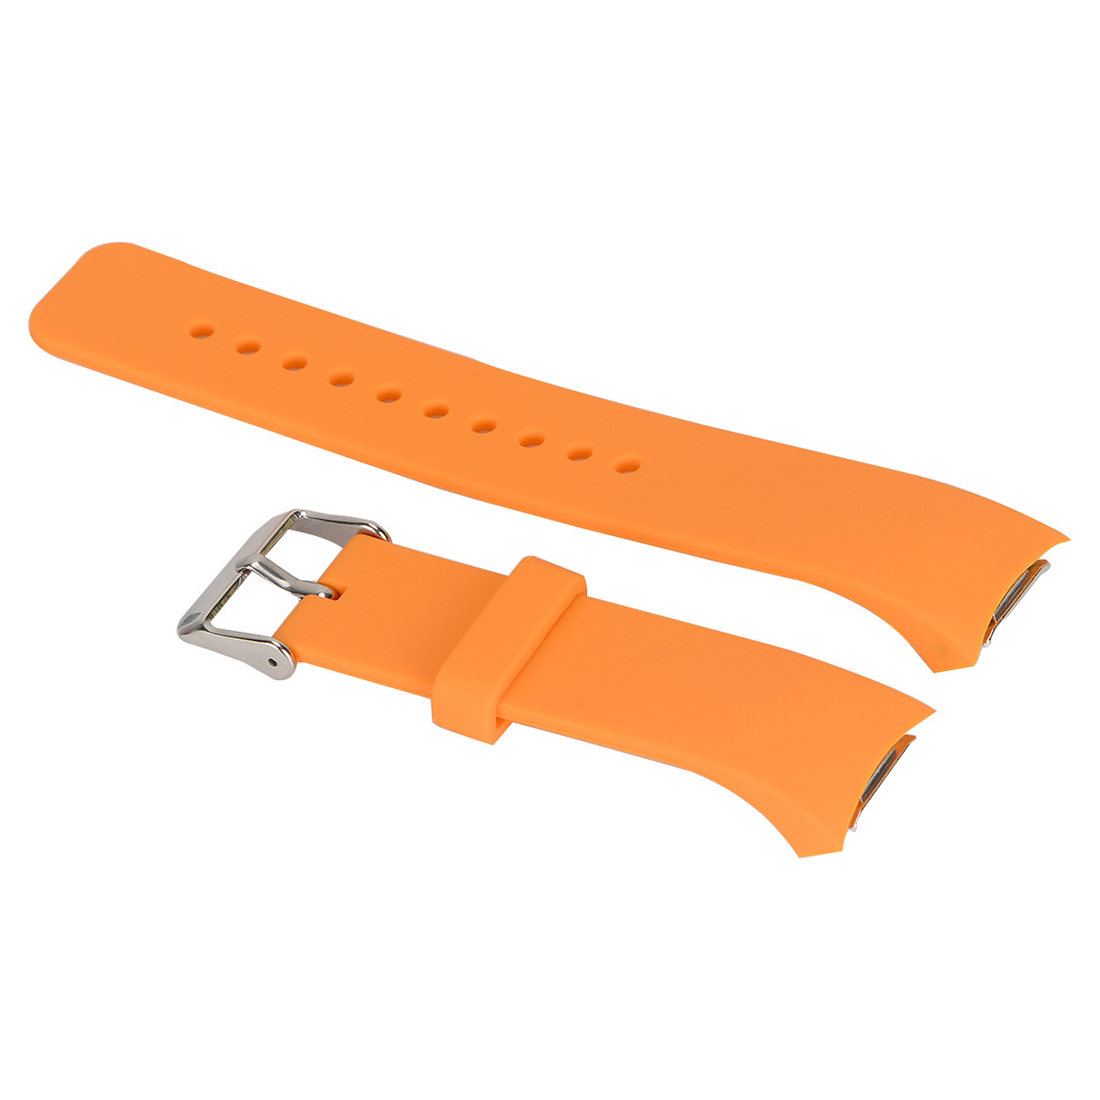 Luxury Silicone Watch Band Strap for Samsung Galaxy S2 Gear SM-R720 Orange 2016 silicone rubber watch band for samsung galaxy gear s2 sm r720 replacement smartwatch bands strap bracelet with patterns